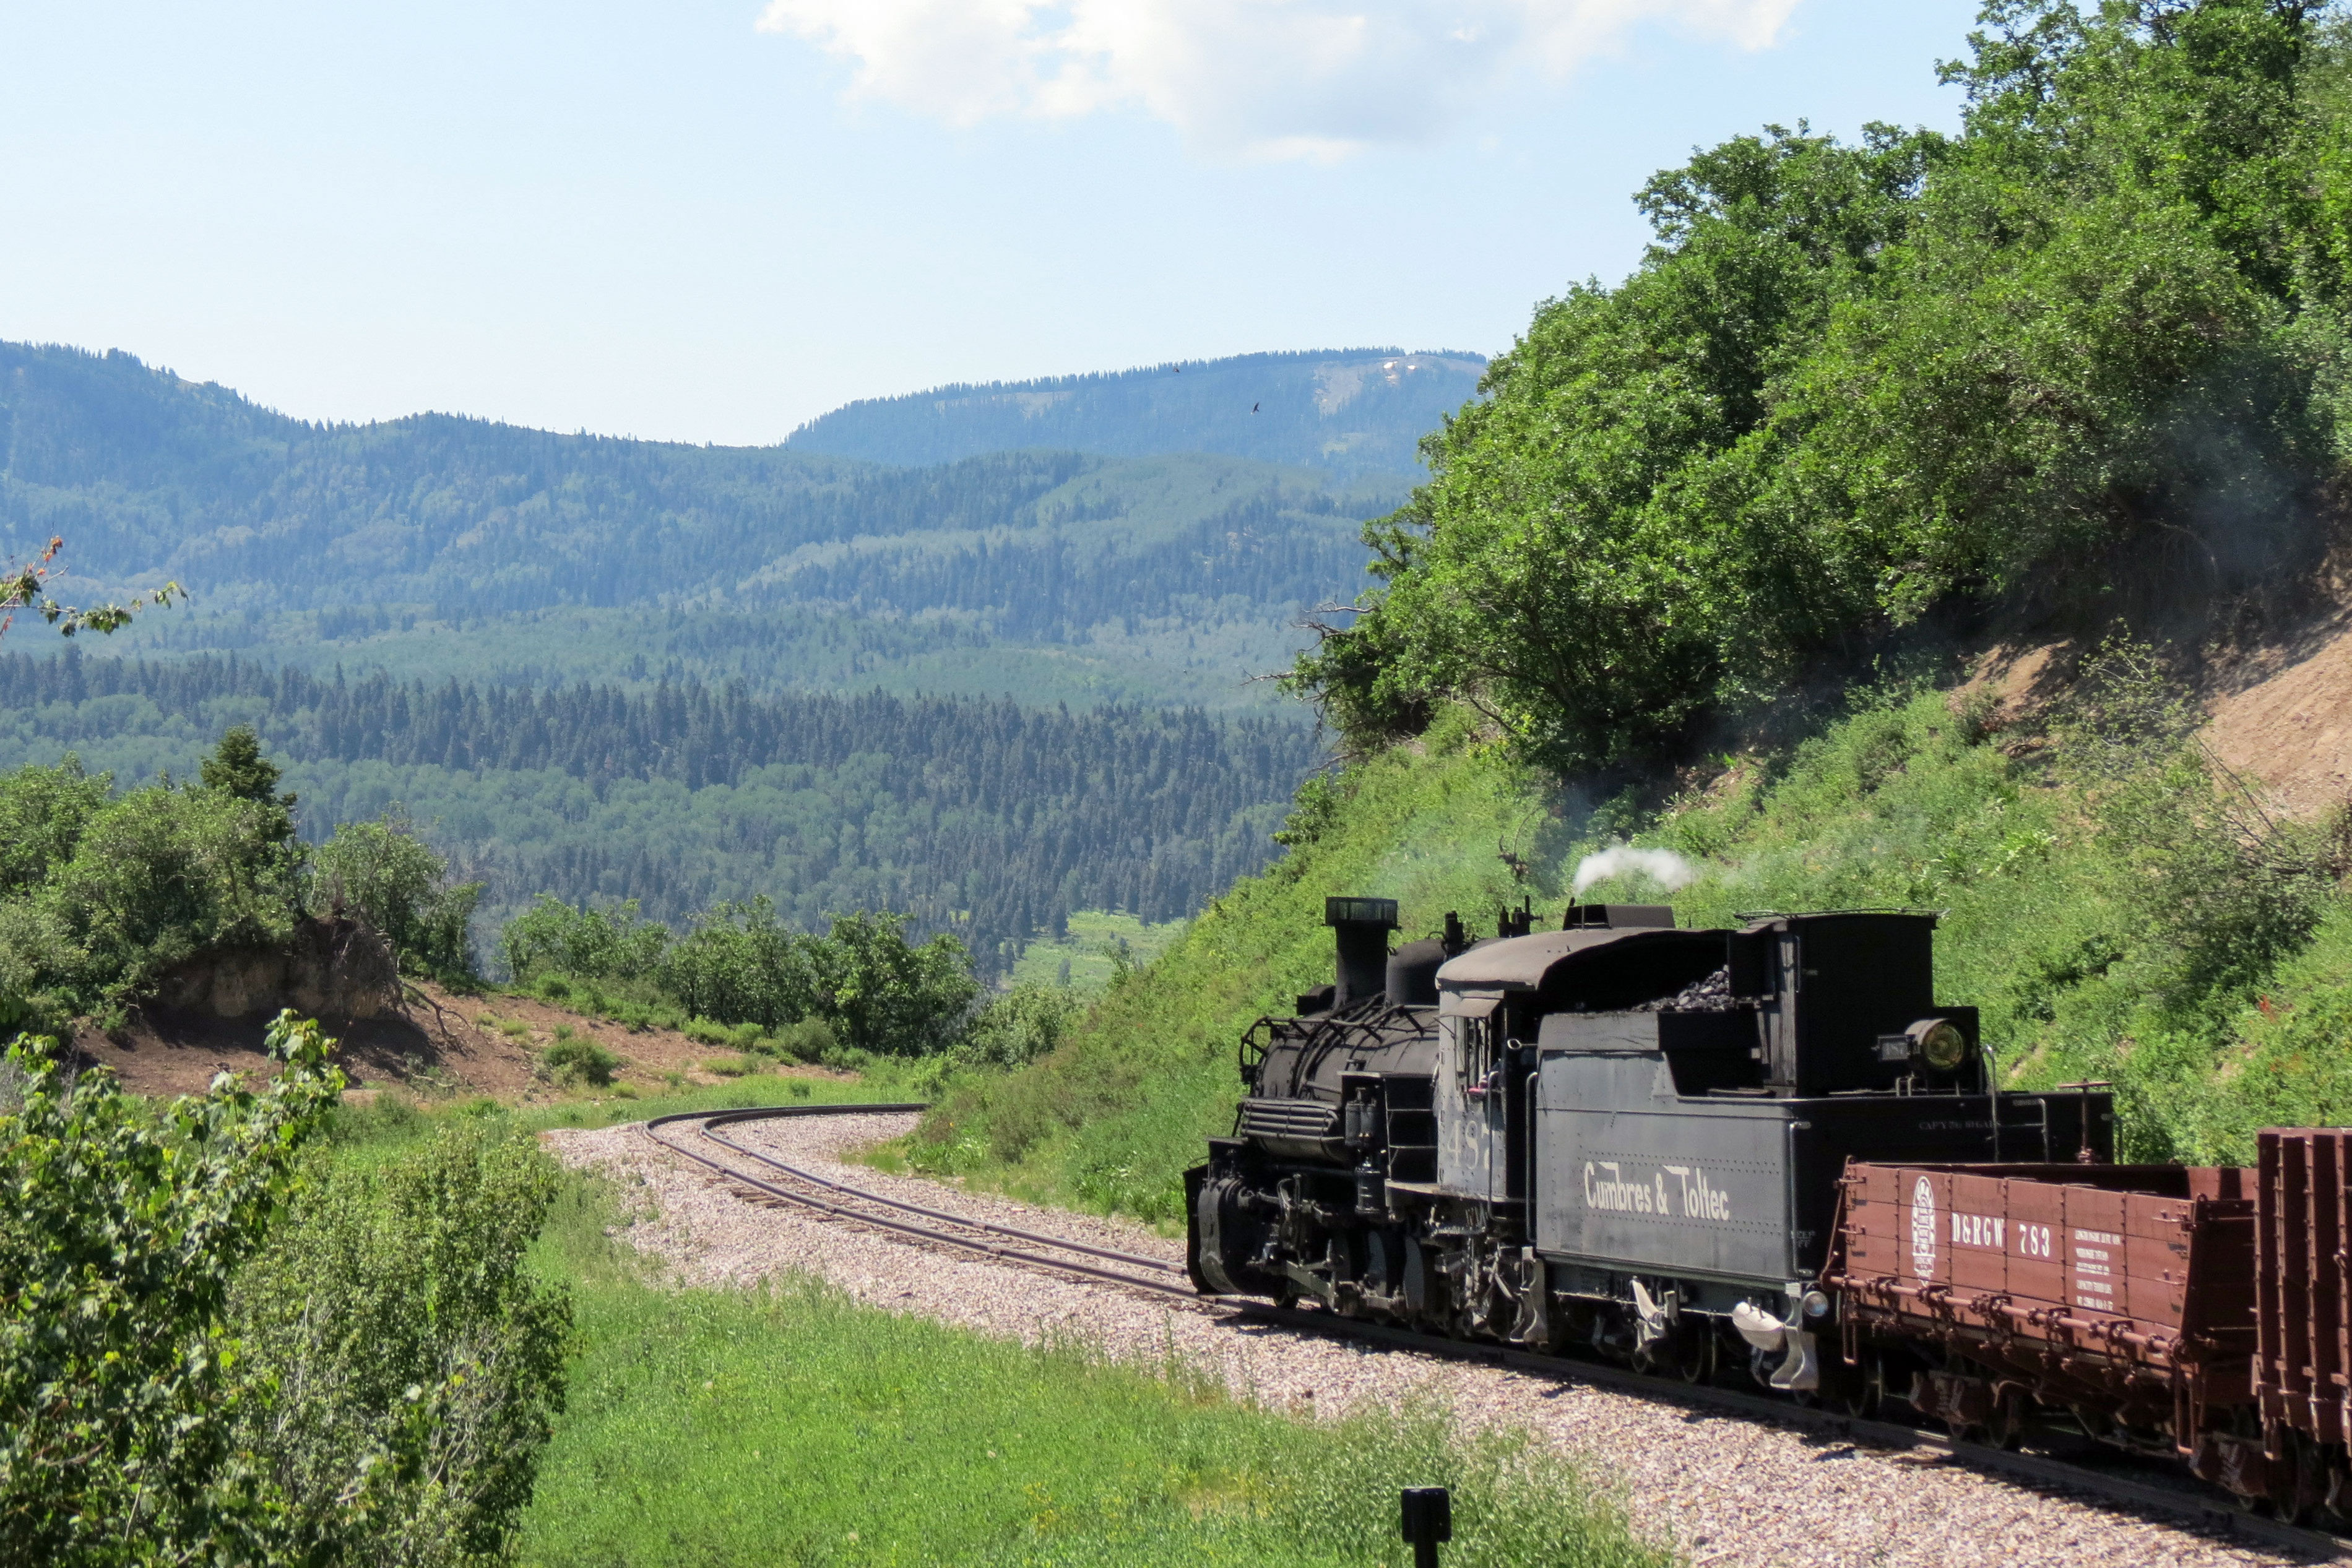 Want To Drive A Steam Train? You Can Learn How On The